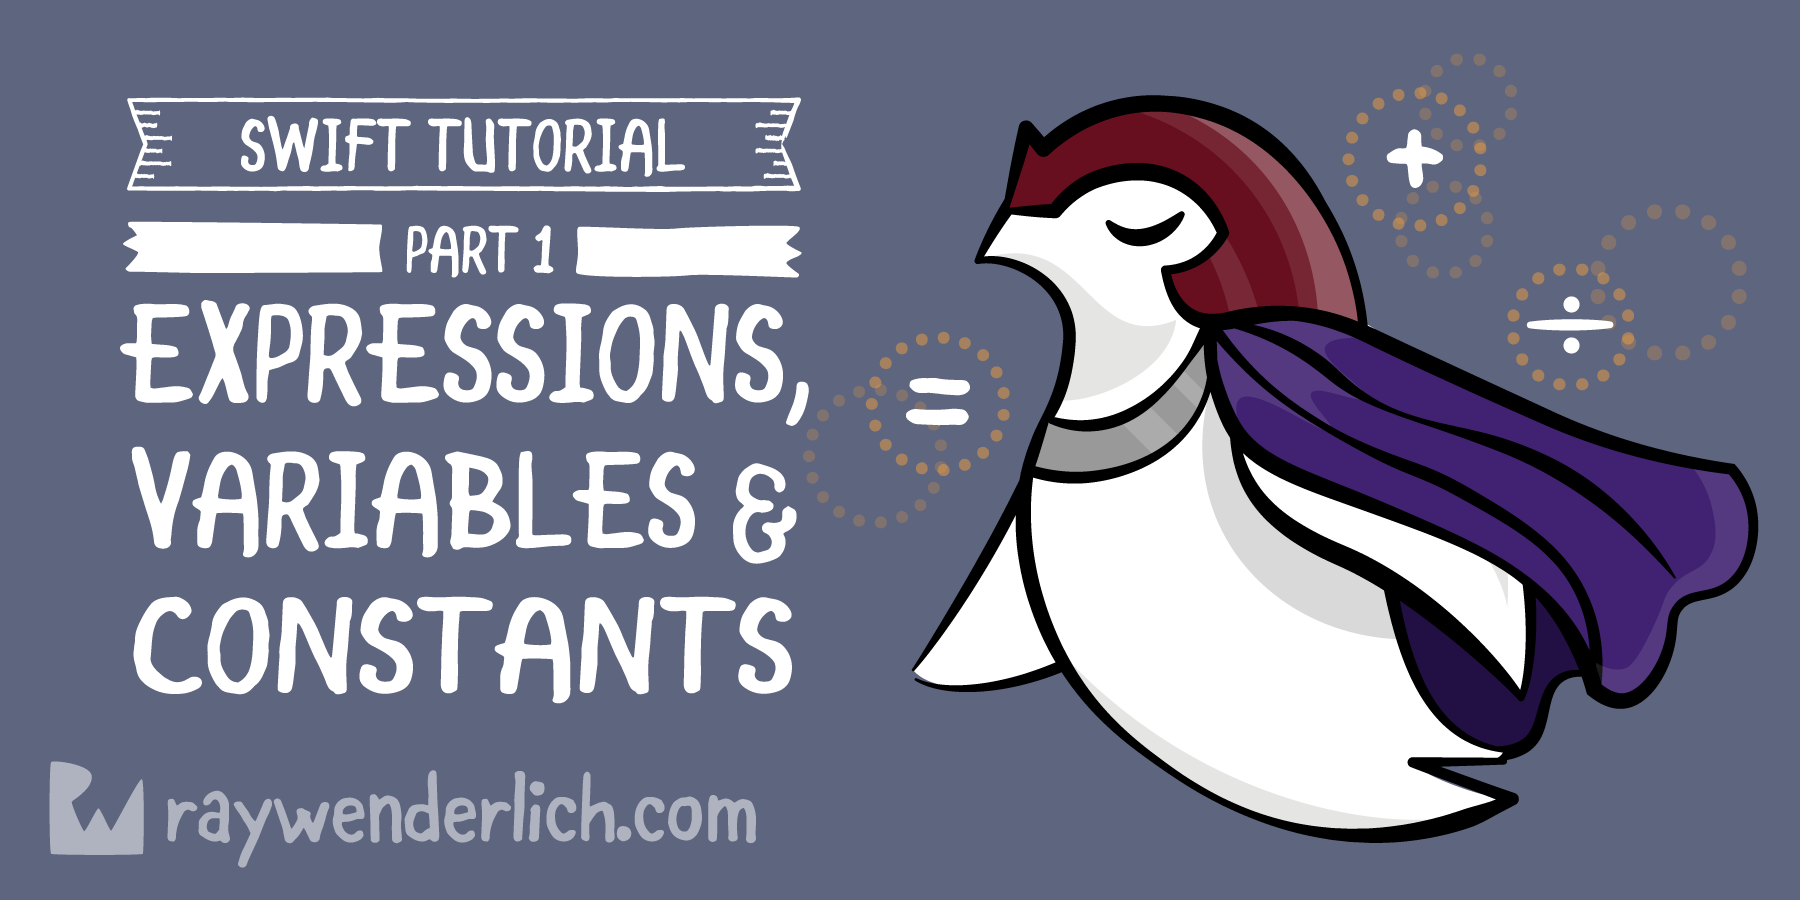 Swift Tutorial Part 1: Expressions, Variables and Constants [FREE]